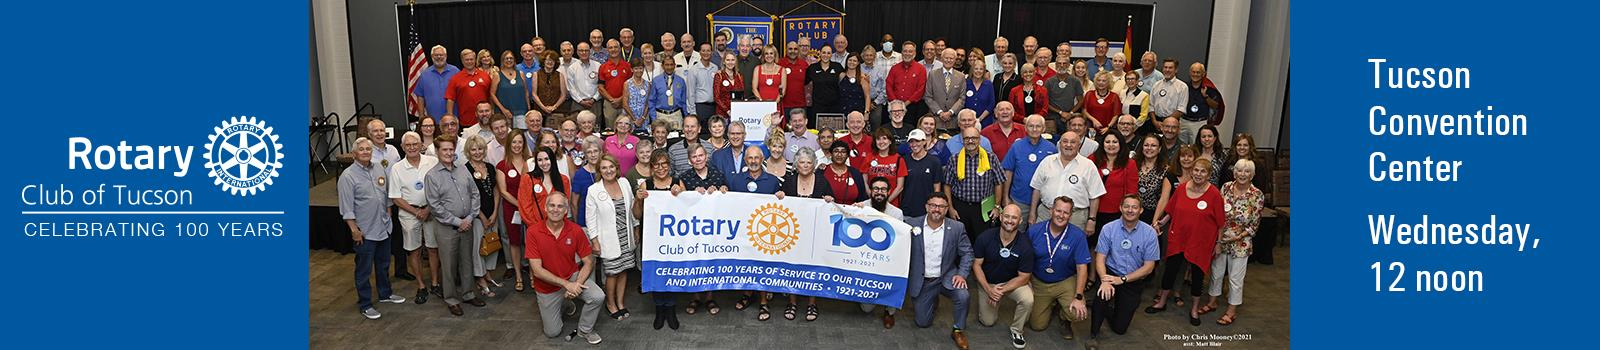 Fellowship with Rotary Club of Tucson . . .